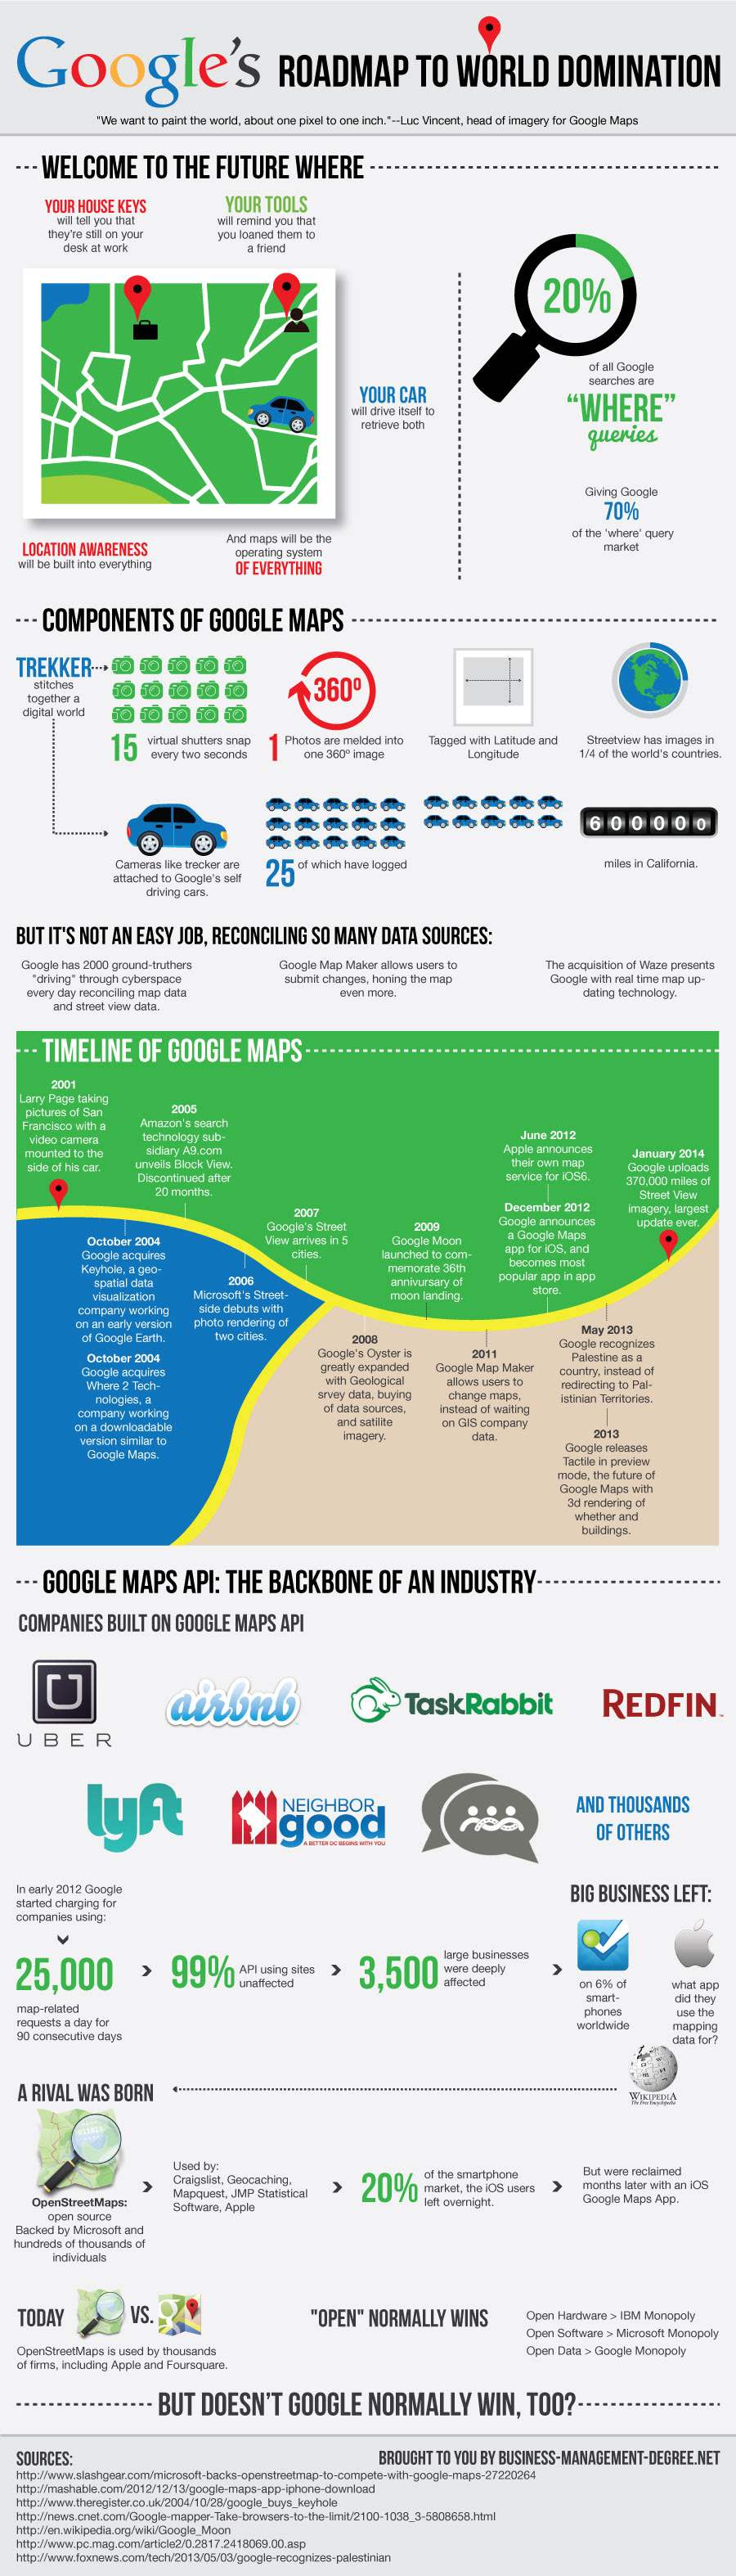 infographic: Google's Roadmap to World Domination